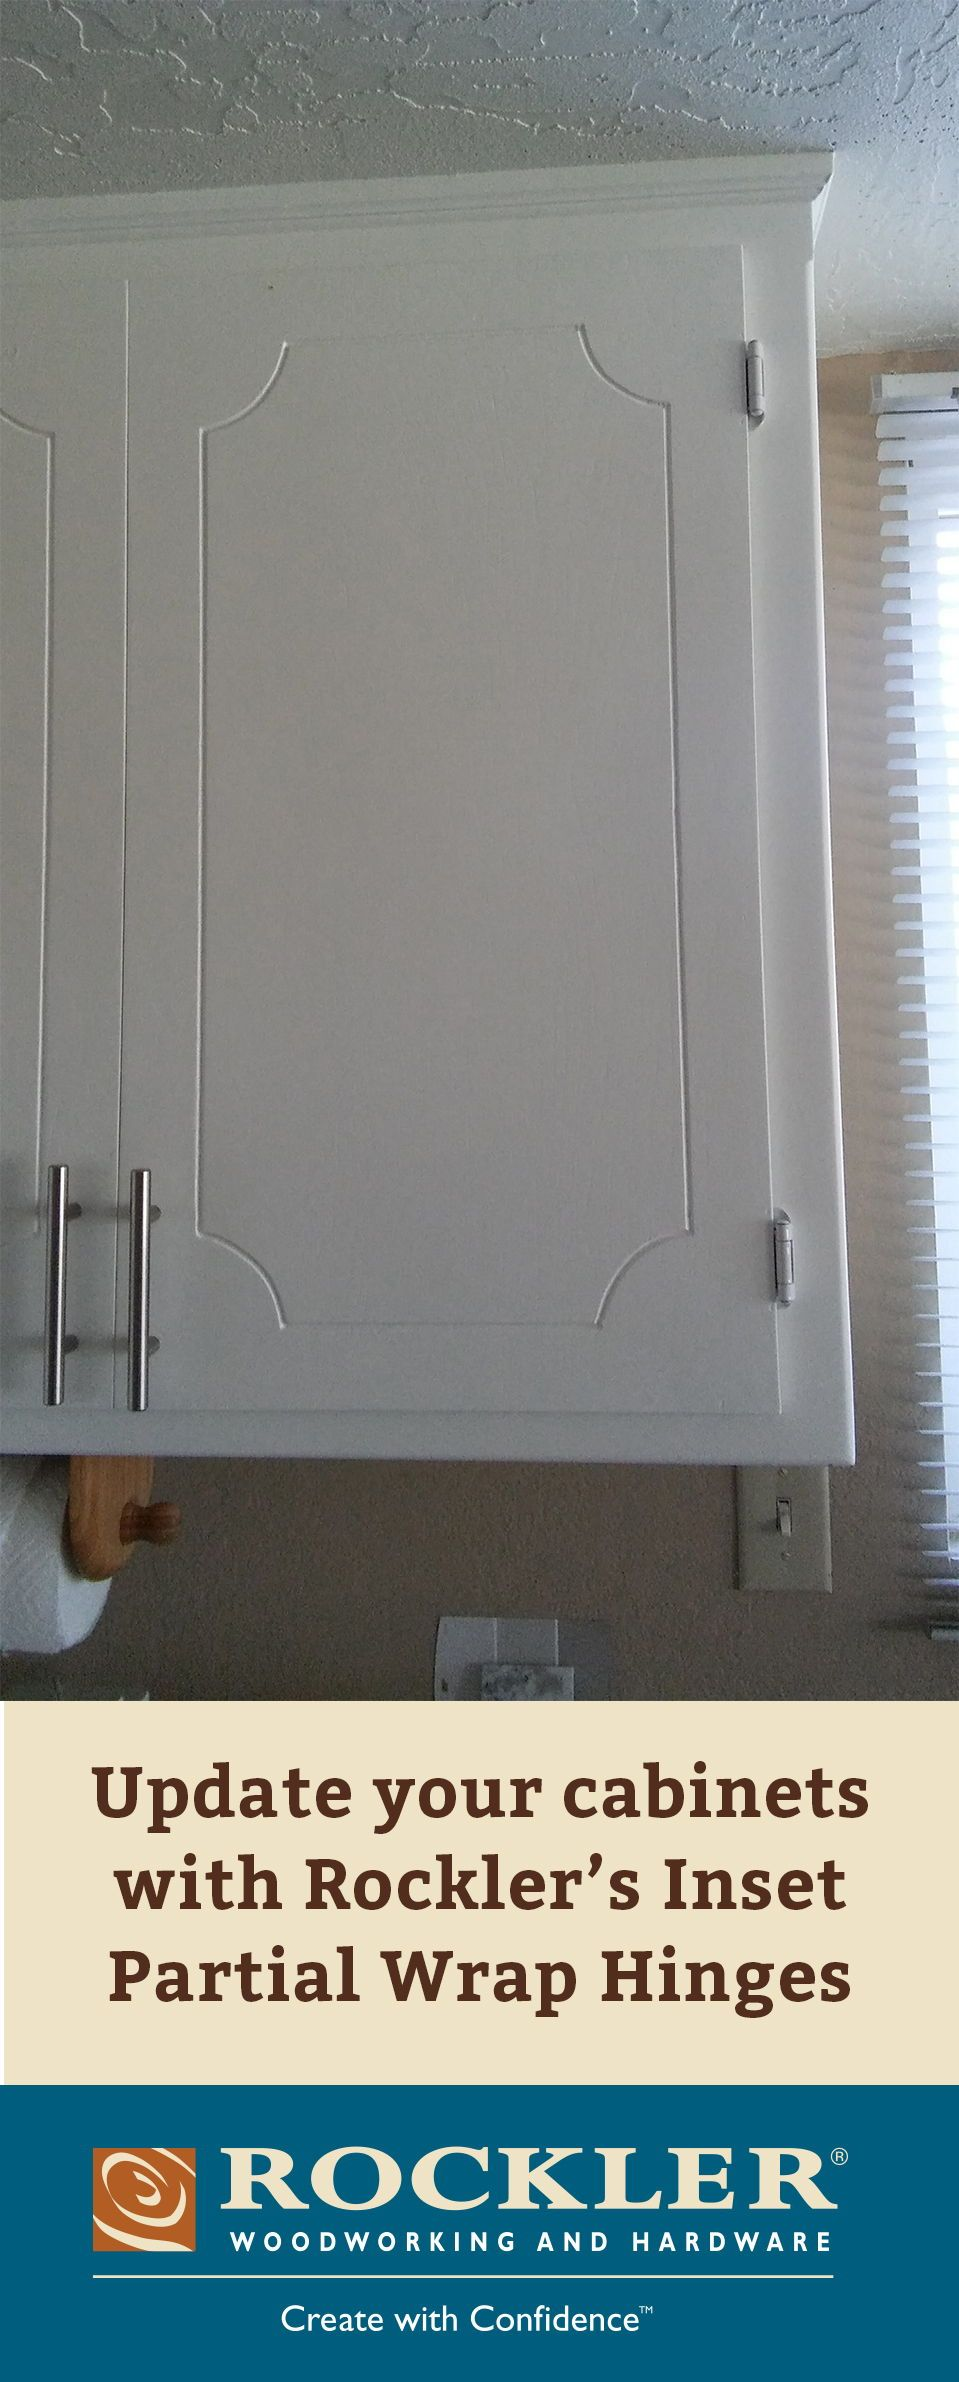 Low Profile Hinge With Only The 2 Long Barrel Showing Kitchen Cabinets Door Hinges Inset Hinges Kitchen Cabinets Fronts